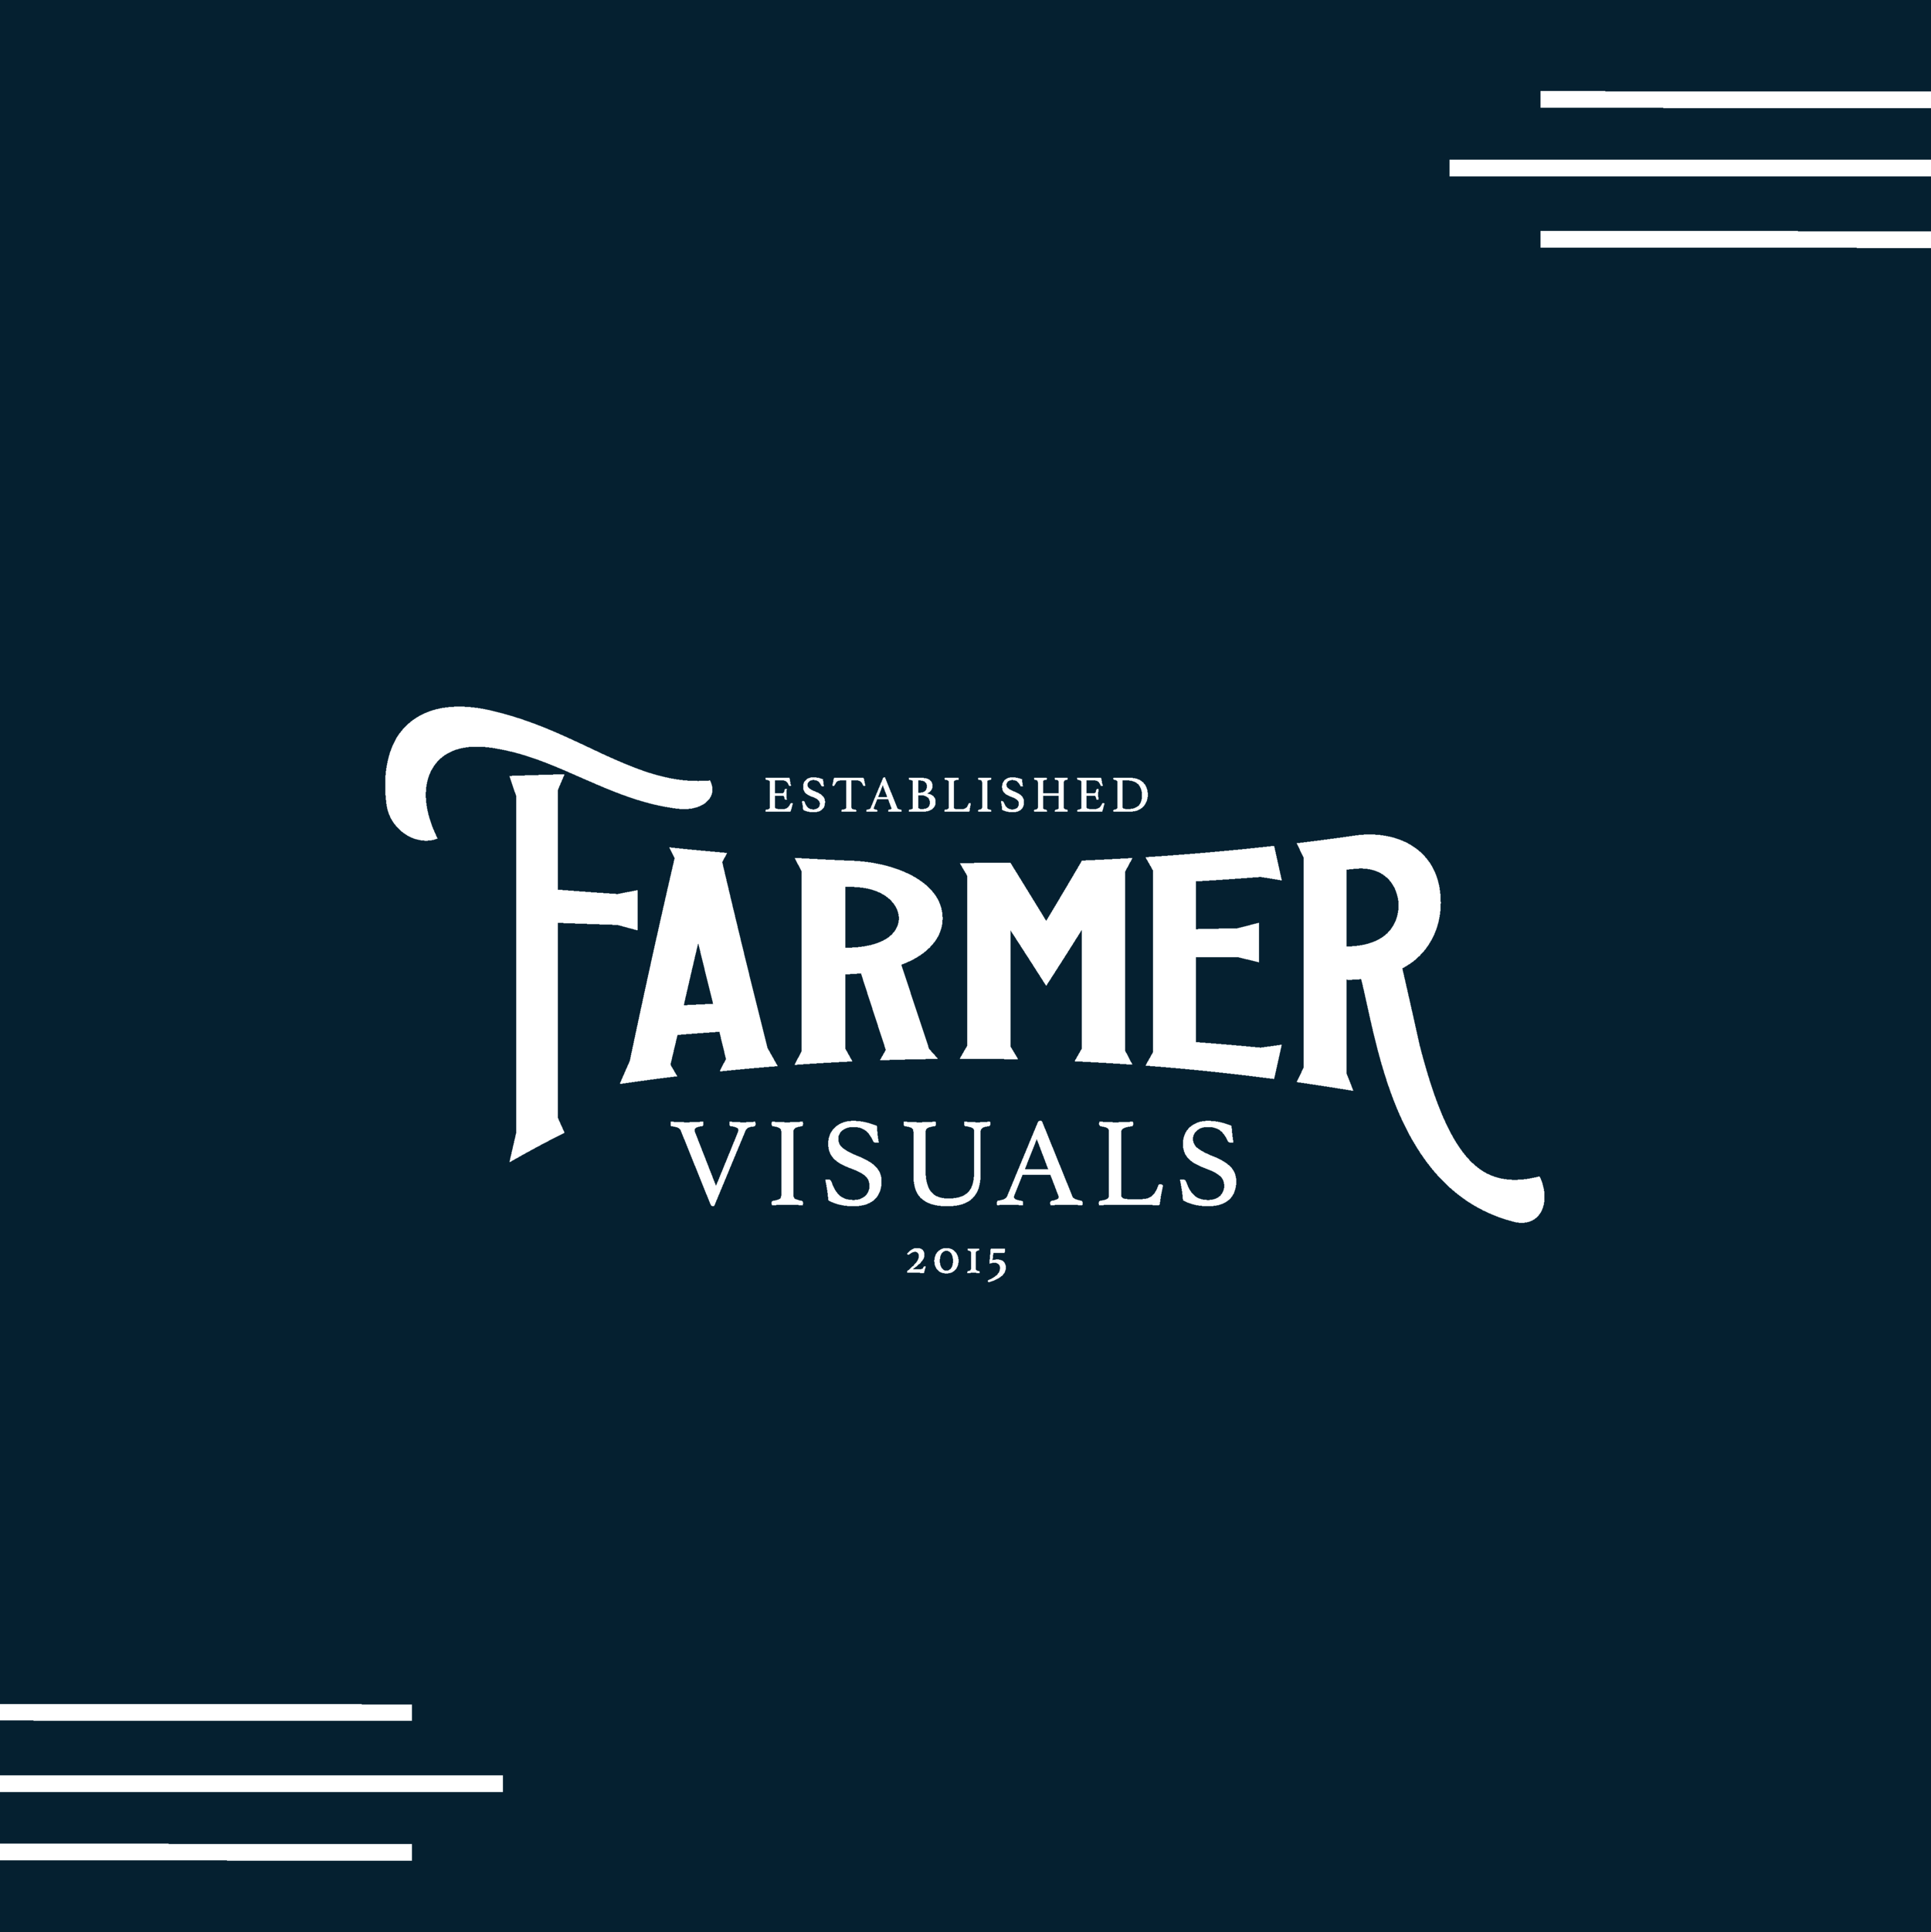 Farmer Visuals North Carolina Wedding Videographers Brand and Logo Design by Kindly by Kelsea